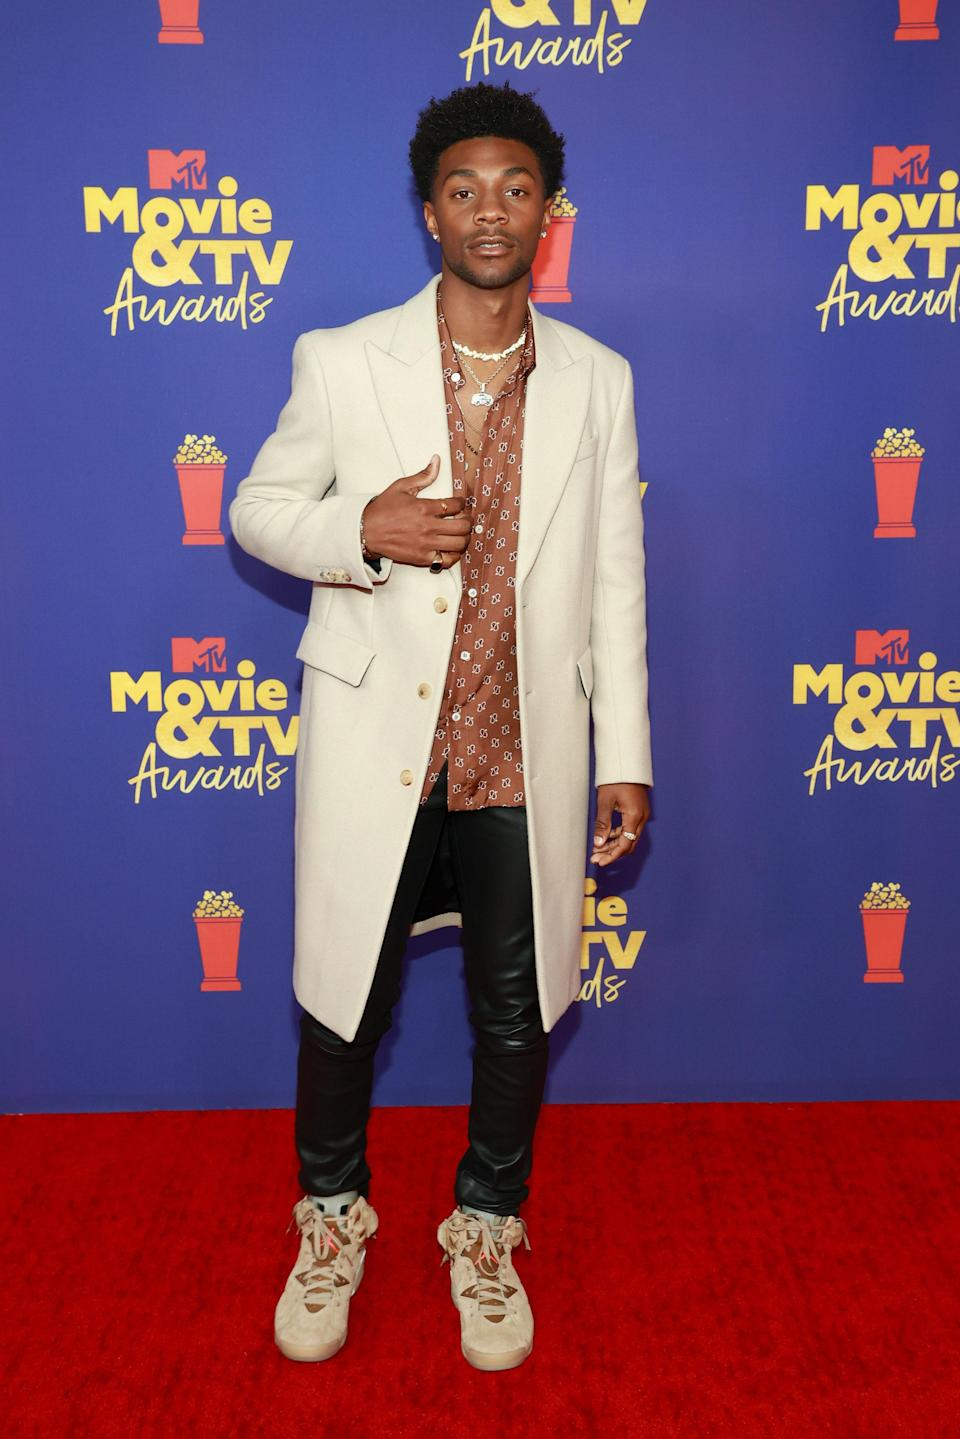 Johnathan Daviss looked sharp as ever in his tonal red carpet look. The <em>Outer Banks</em> star wore a cream coat, a satin brown shirt, black leather skinnies, and a sand pair of Jordans.